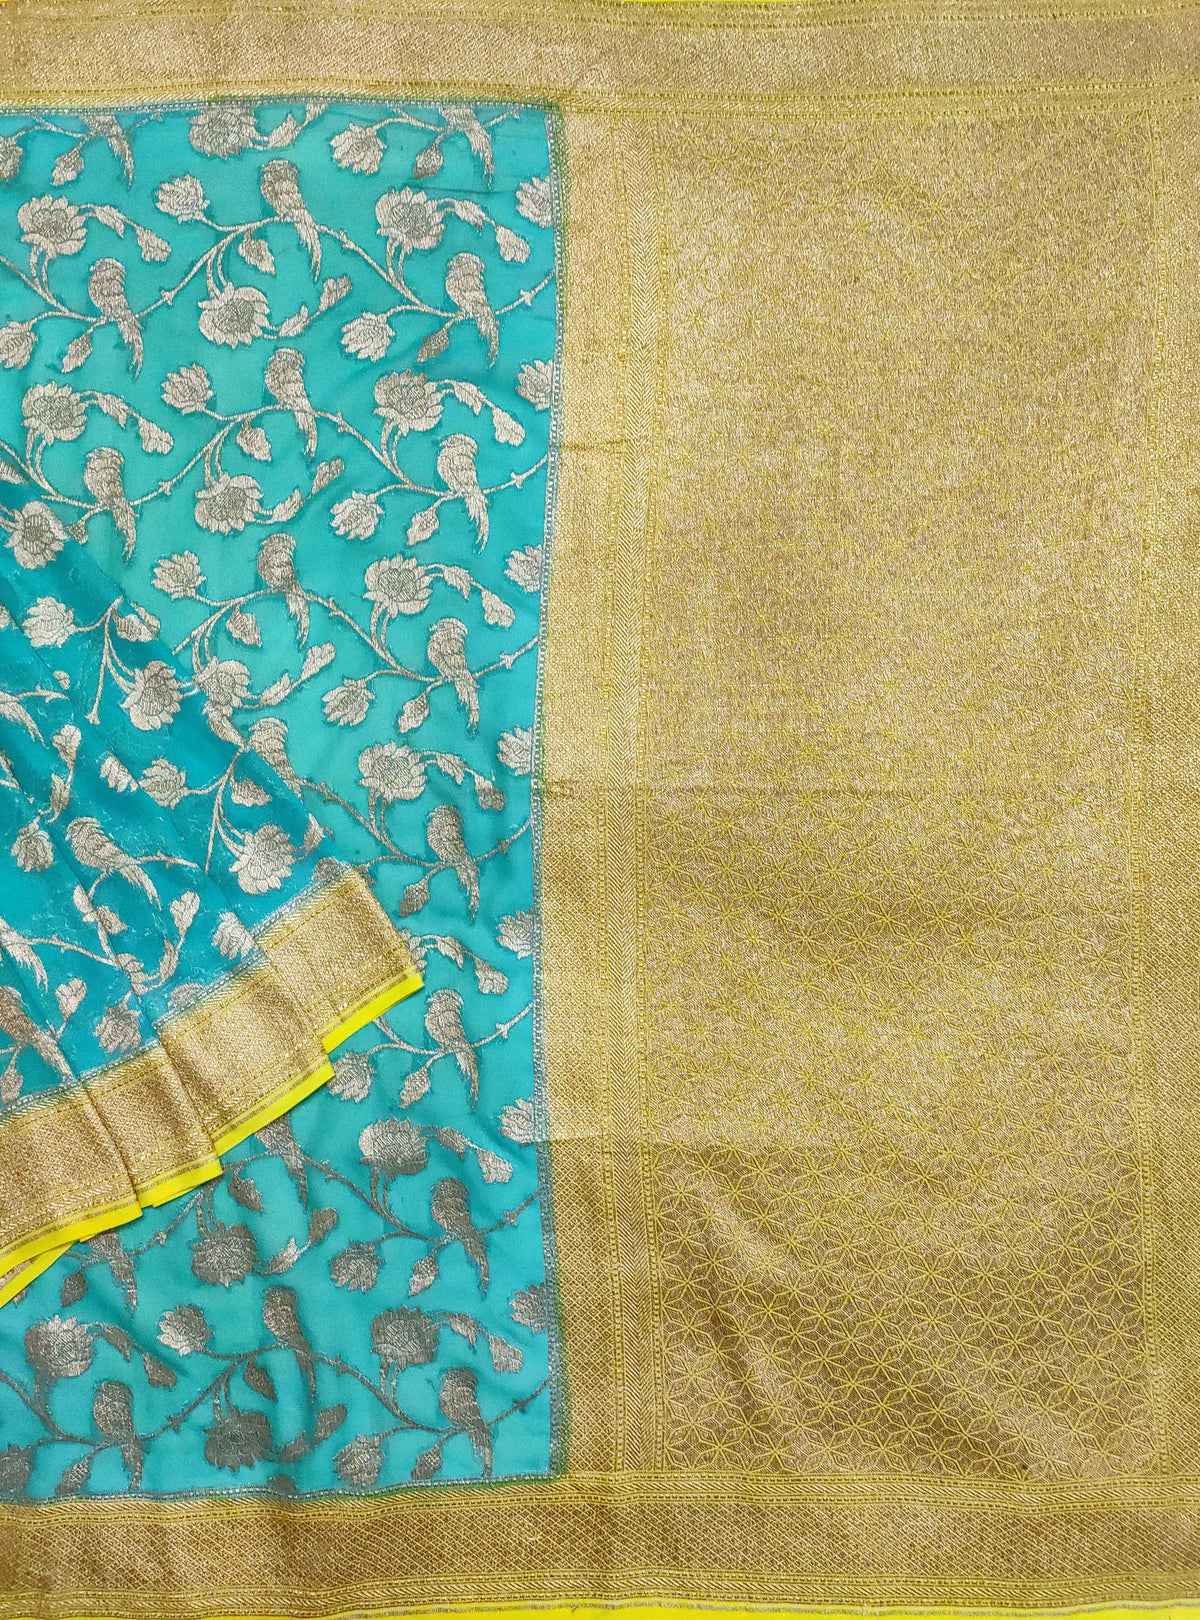 Turquoise Khaddi georgette Handwoven Banarasi saree with flower and bird jaal (1) Main